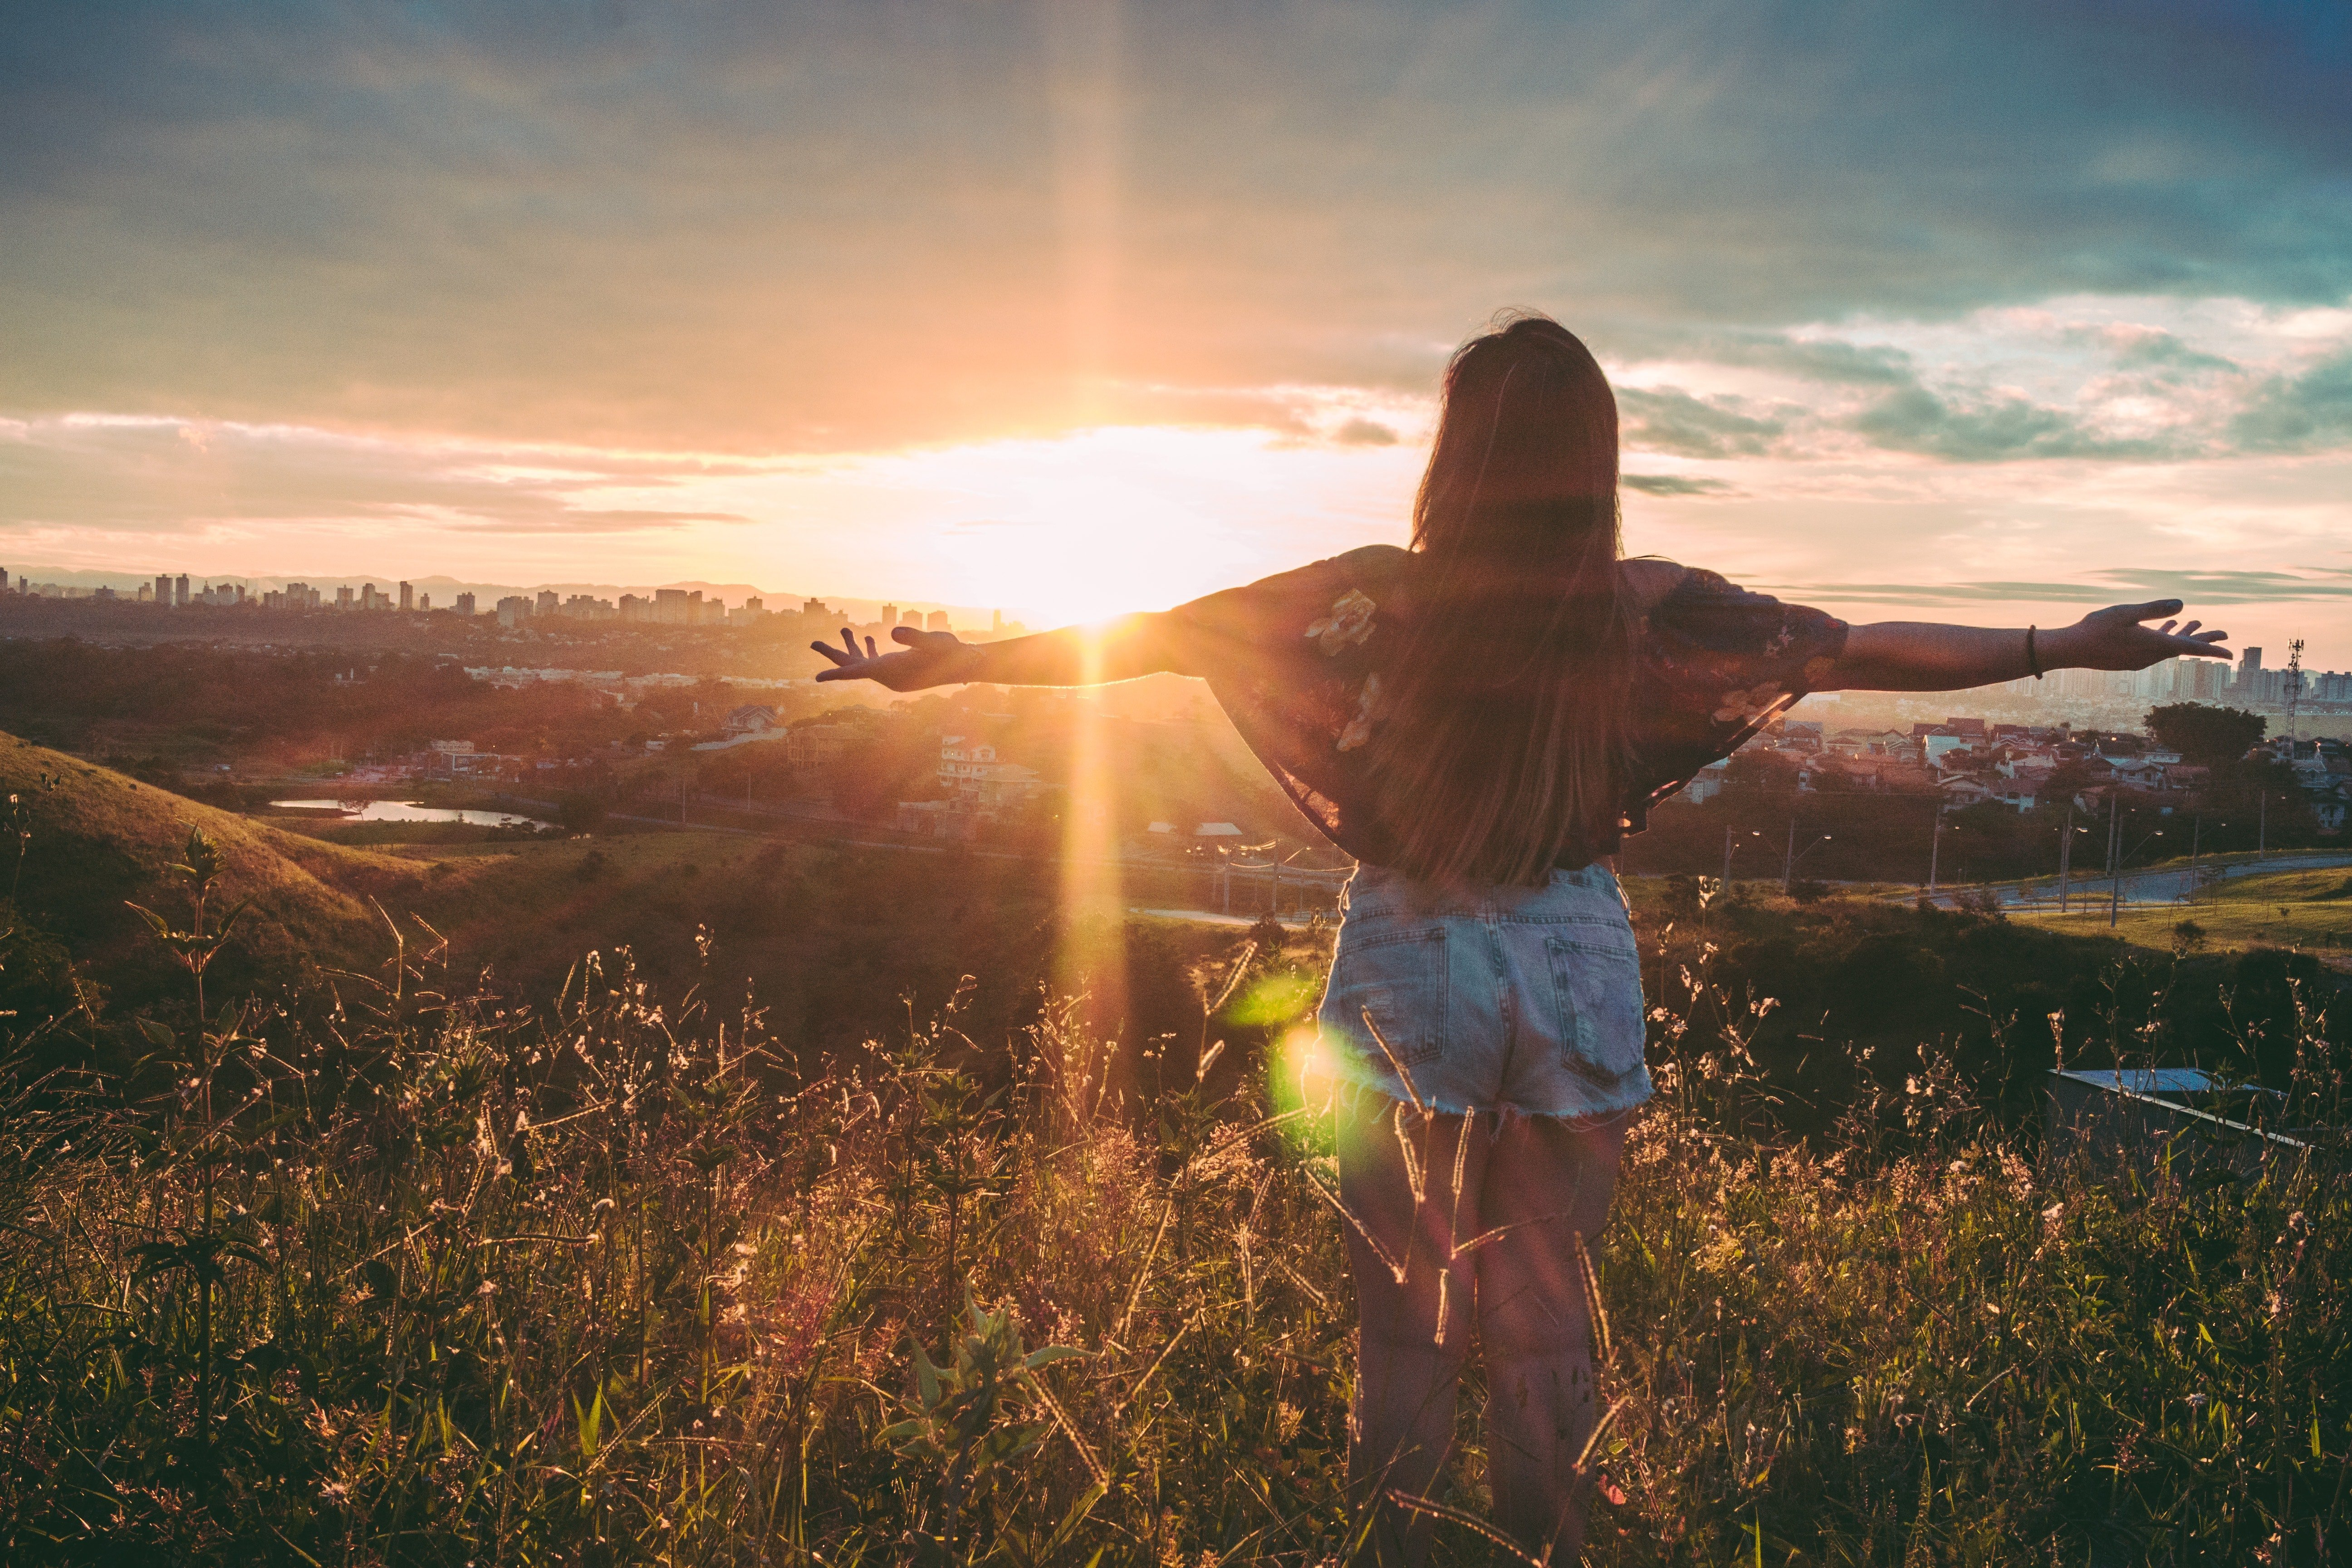 A woman enjoying freedom by spreading her arms against sunlight. | Source: Pexels